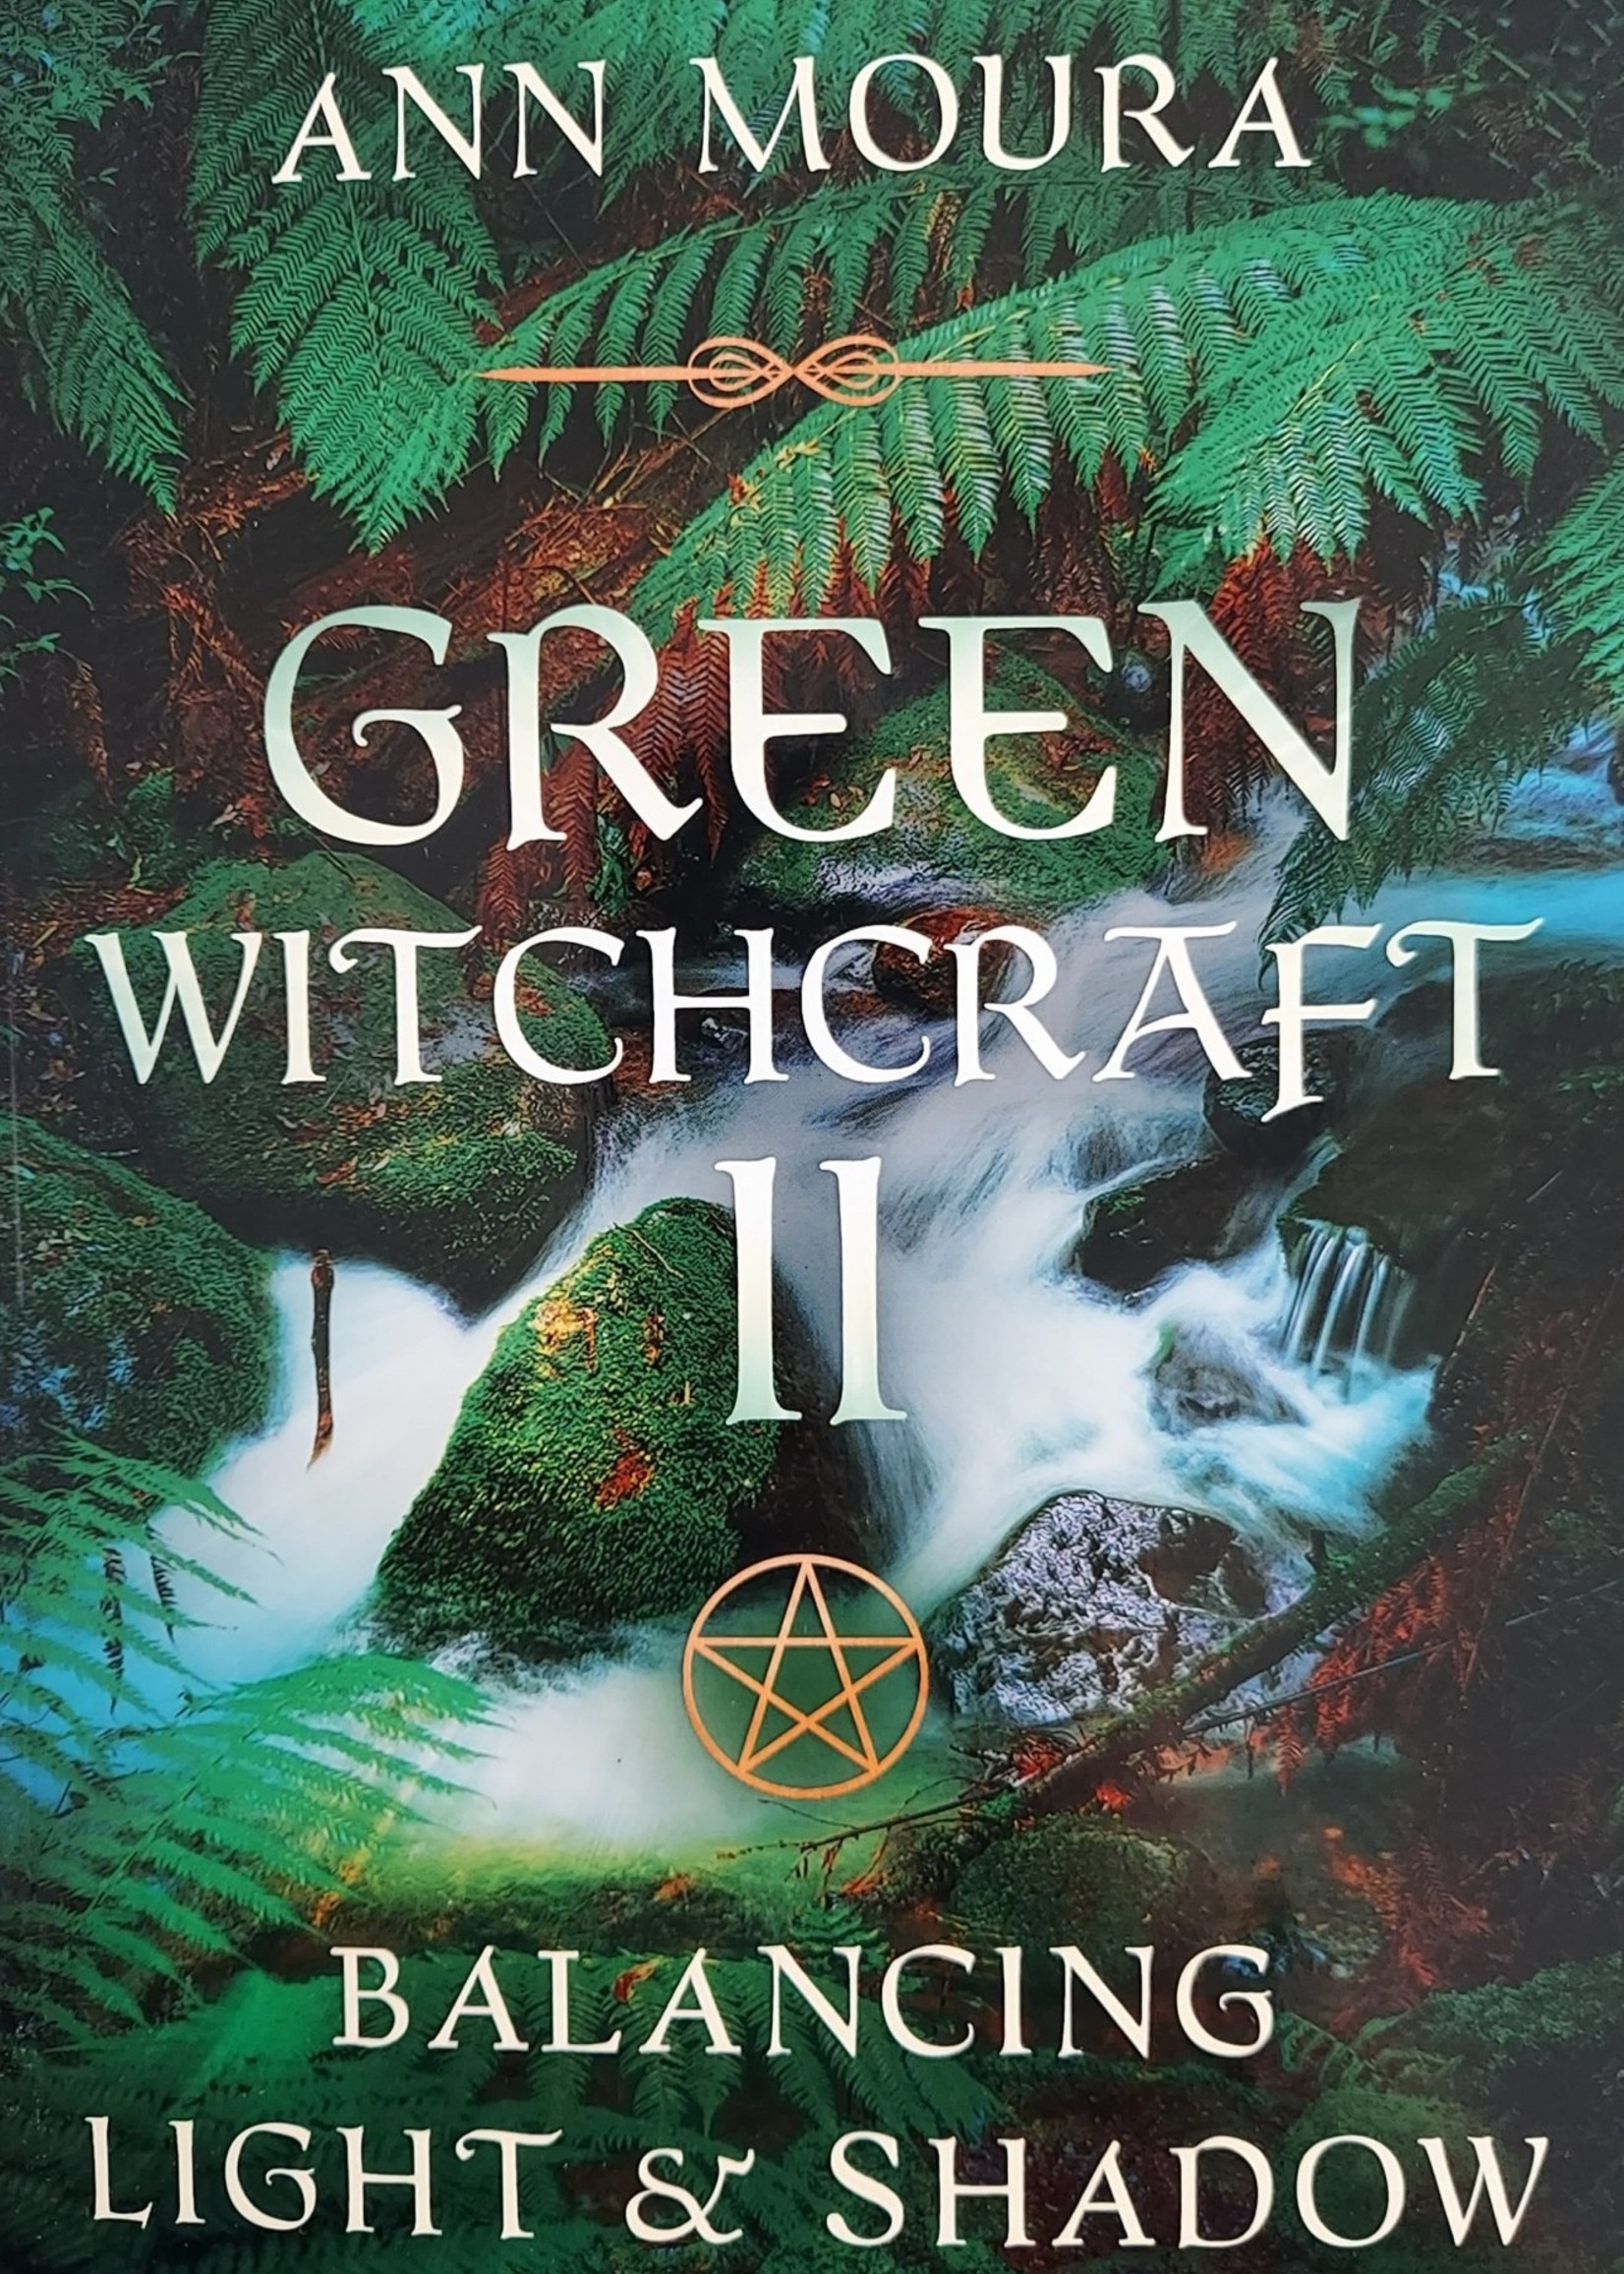 Green Witchcraft II - BY ANN MOURA